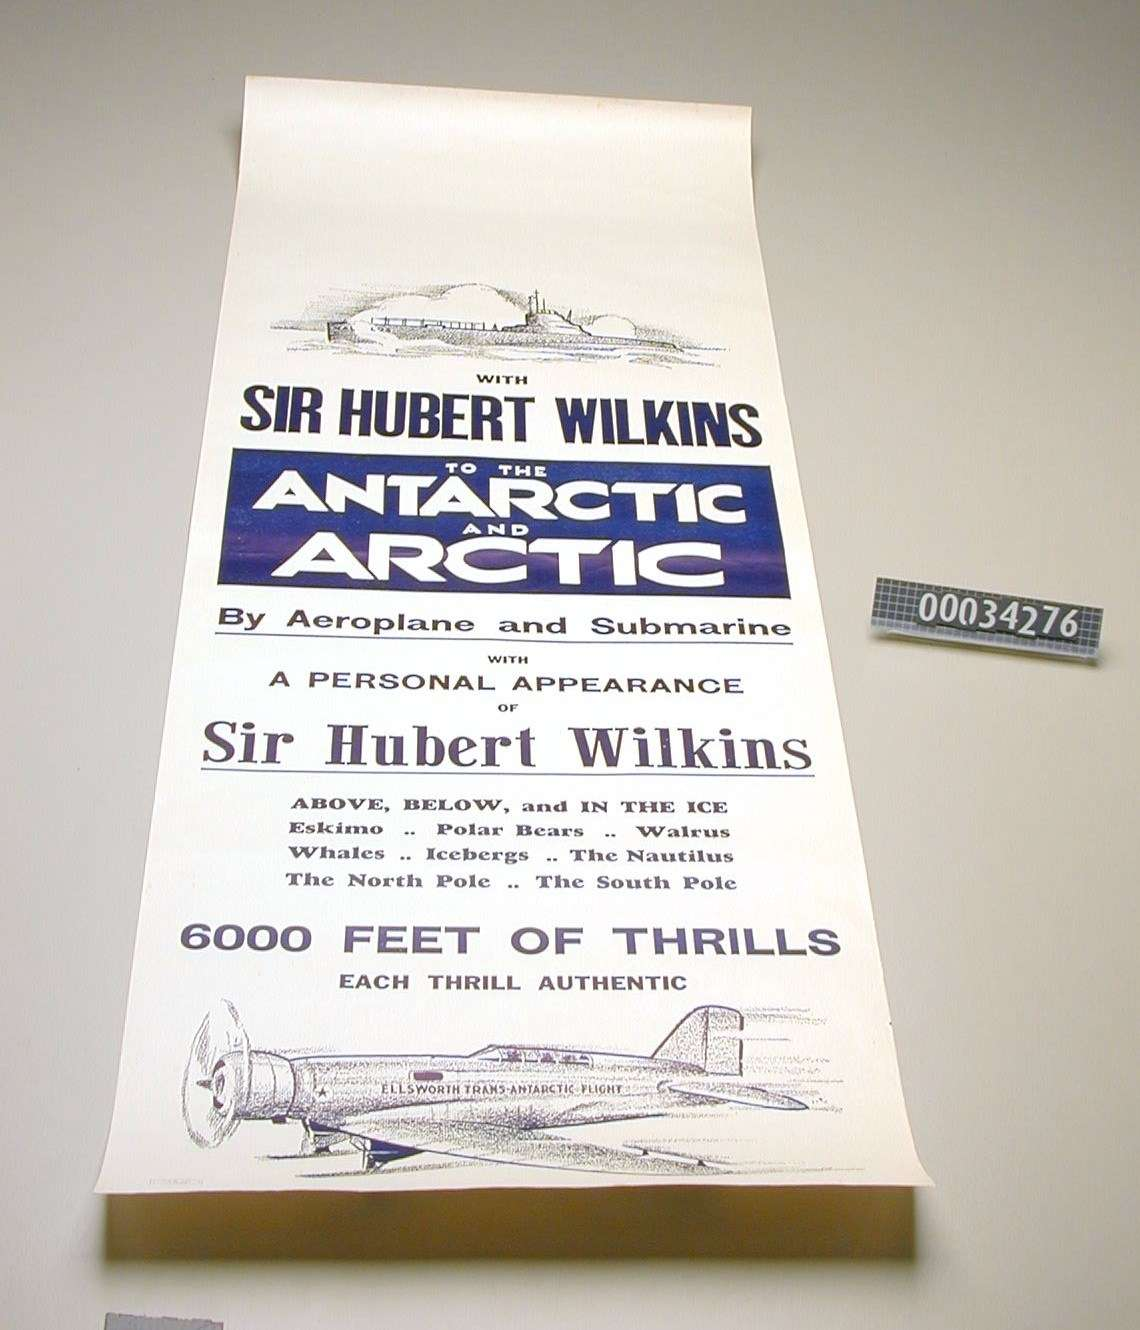 Poster advertising Sir Hubert Wilkins and his adventures. ANMM Collection item 00034276